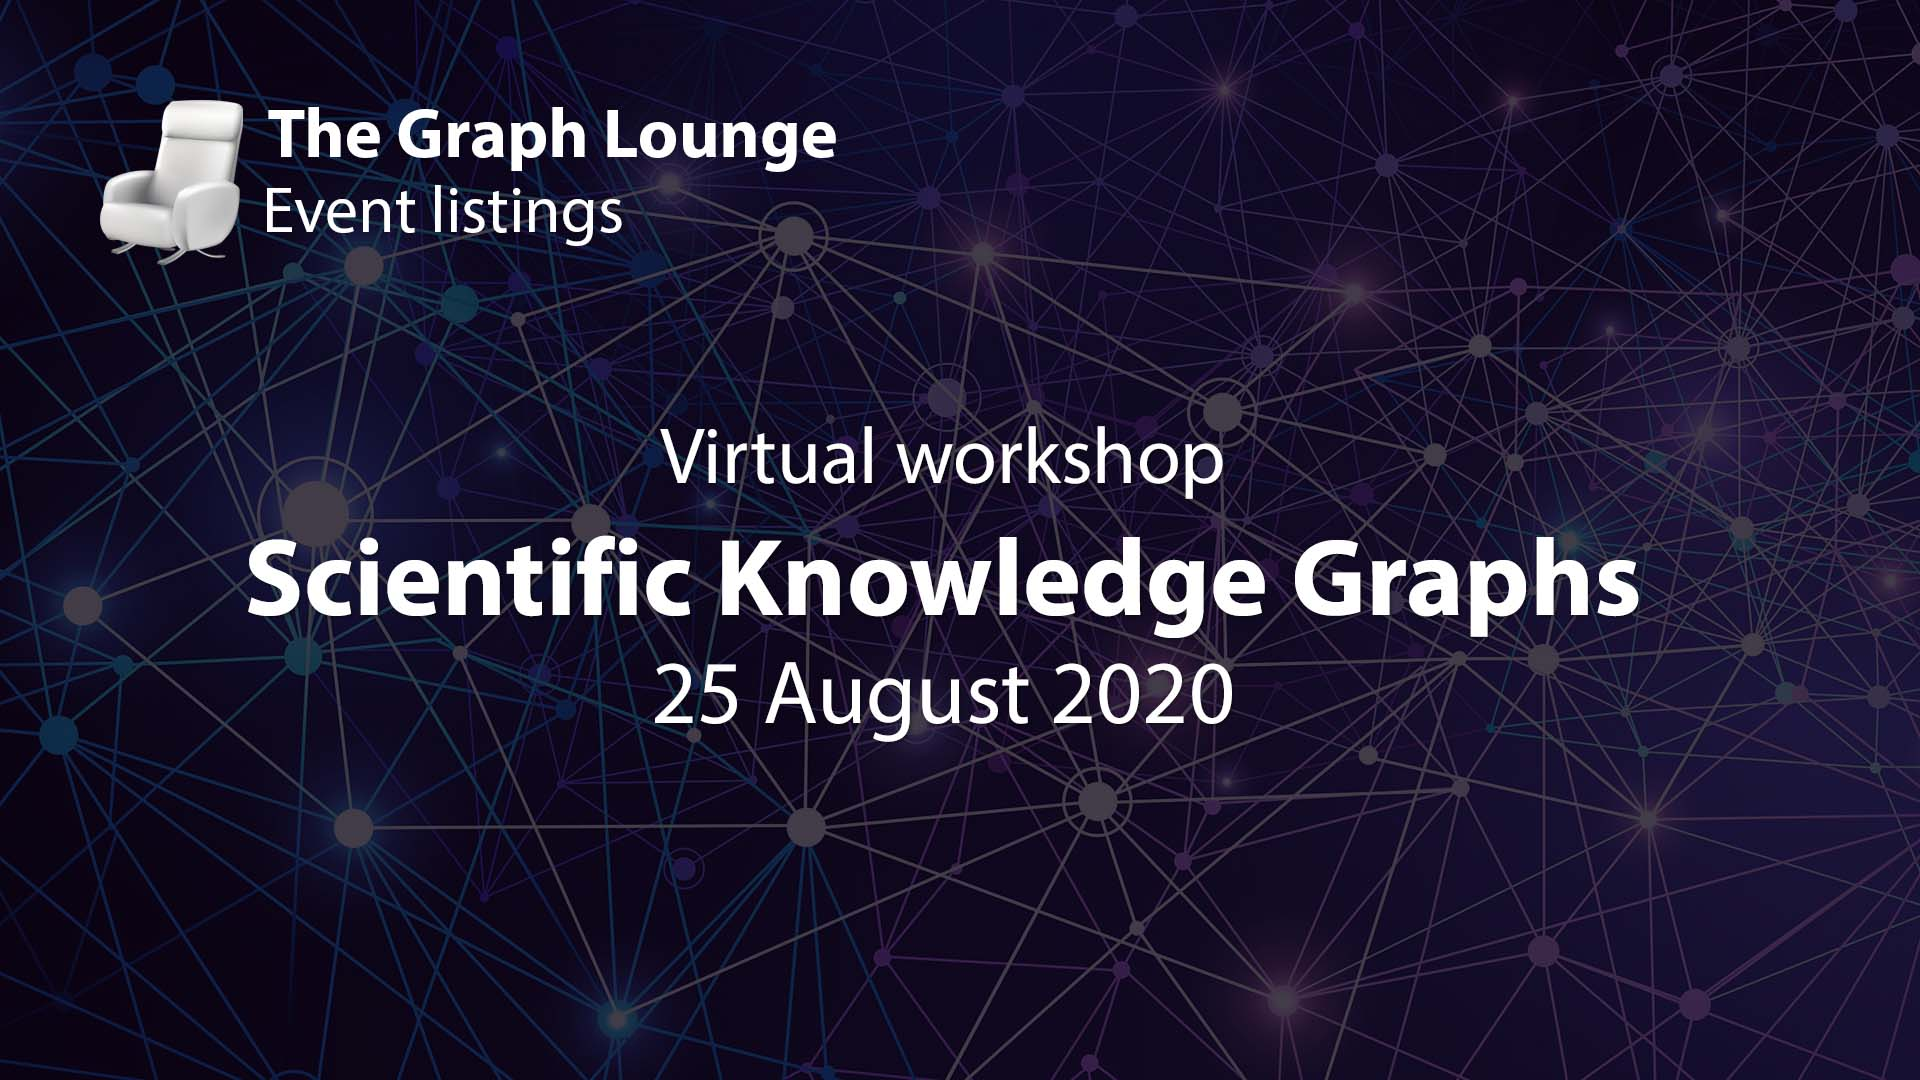 Scientific Knowledge Graphs